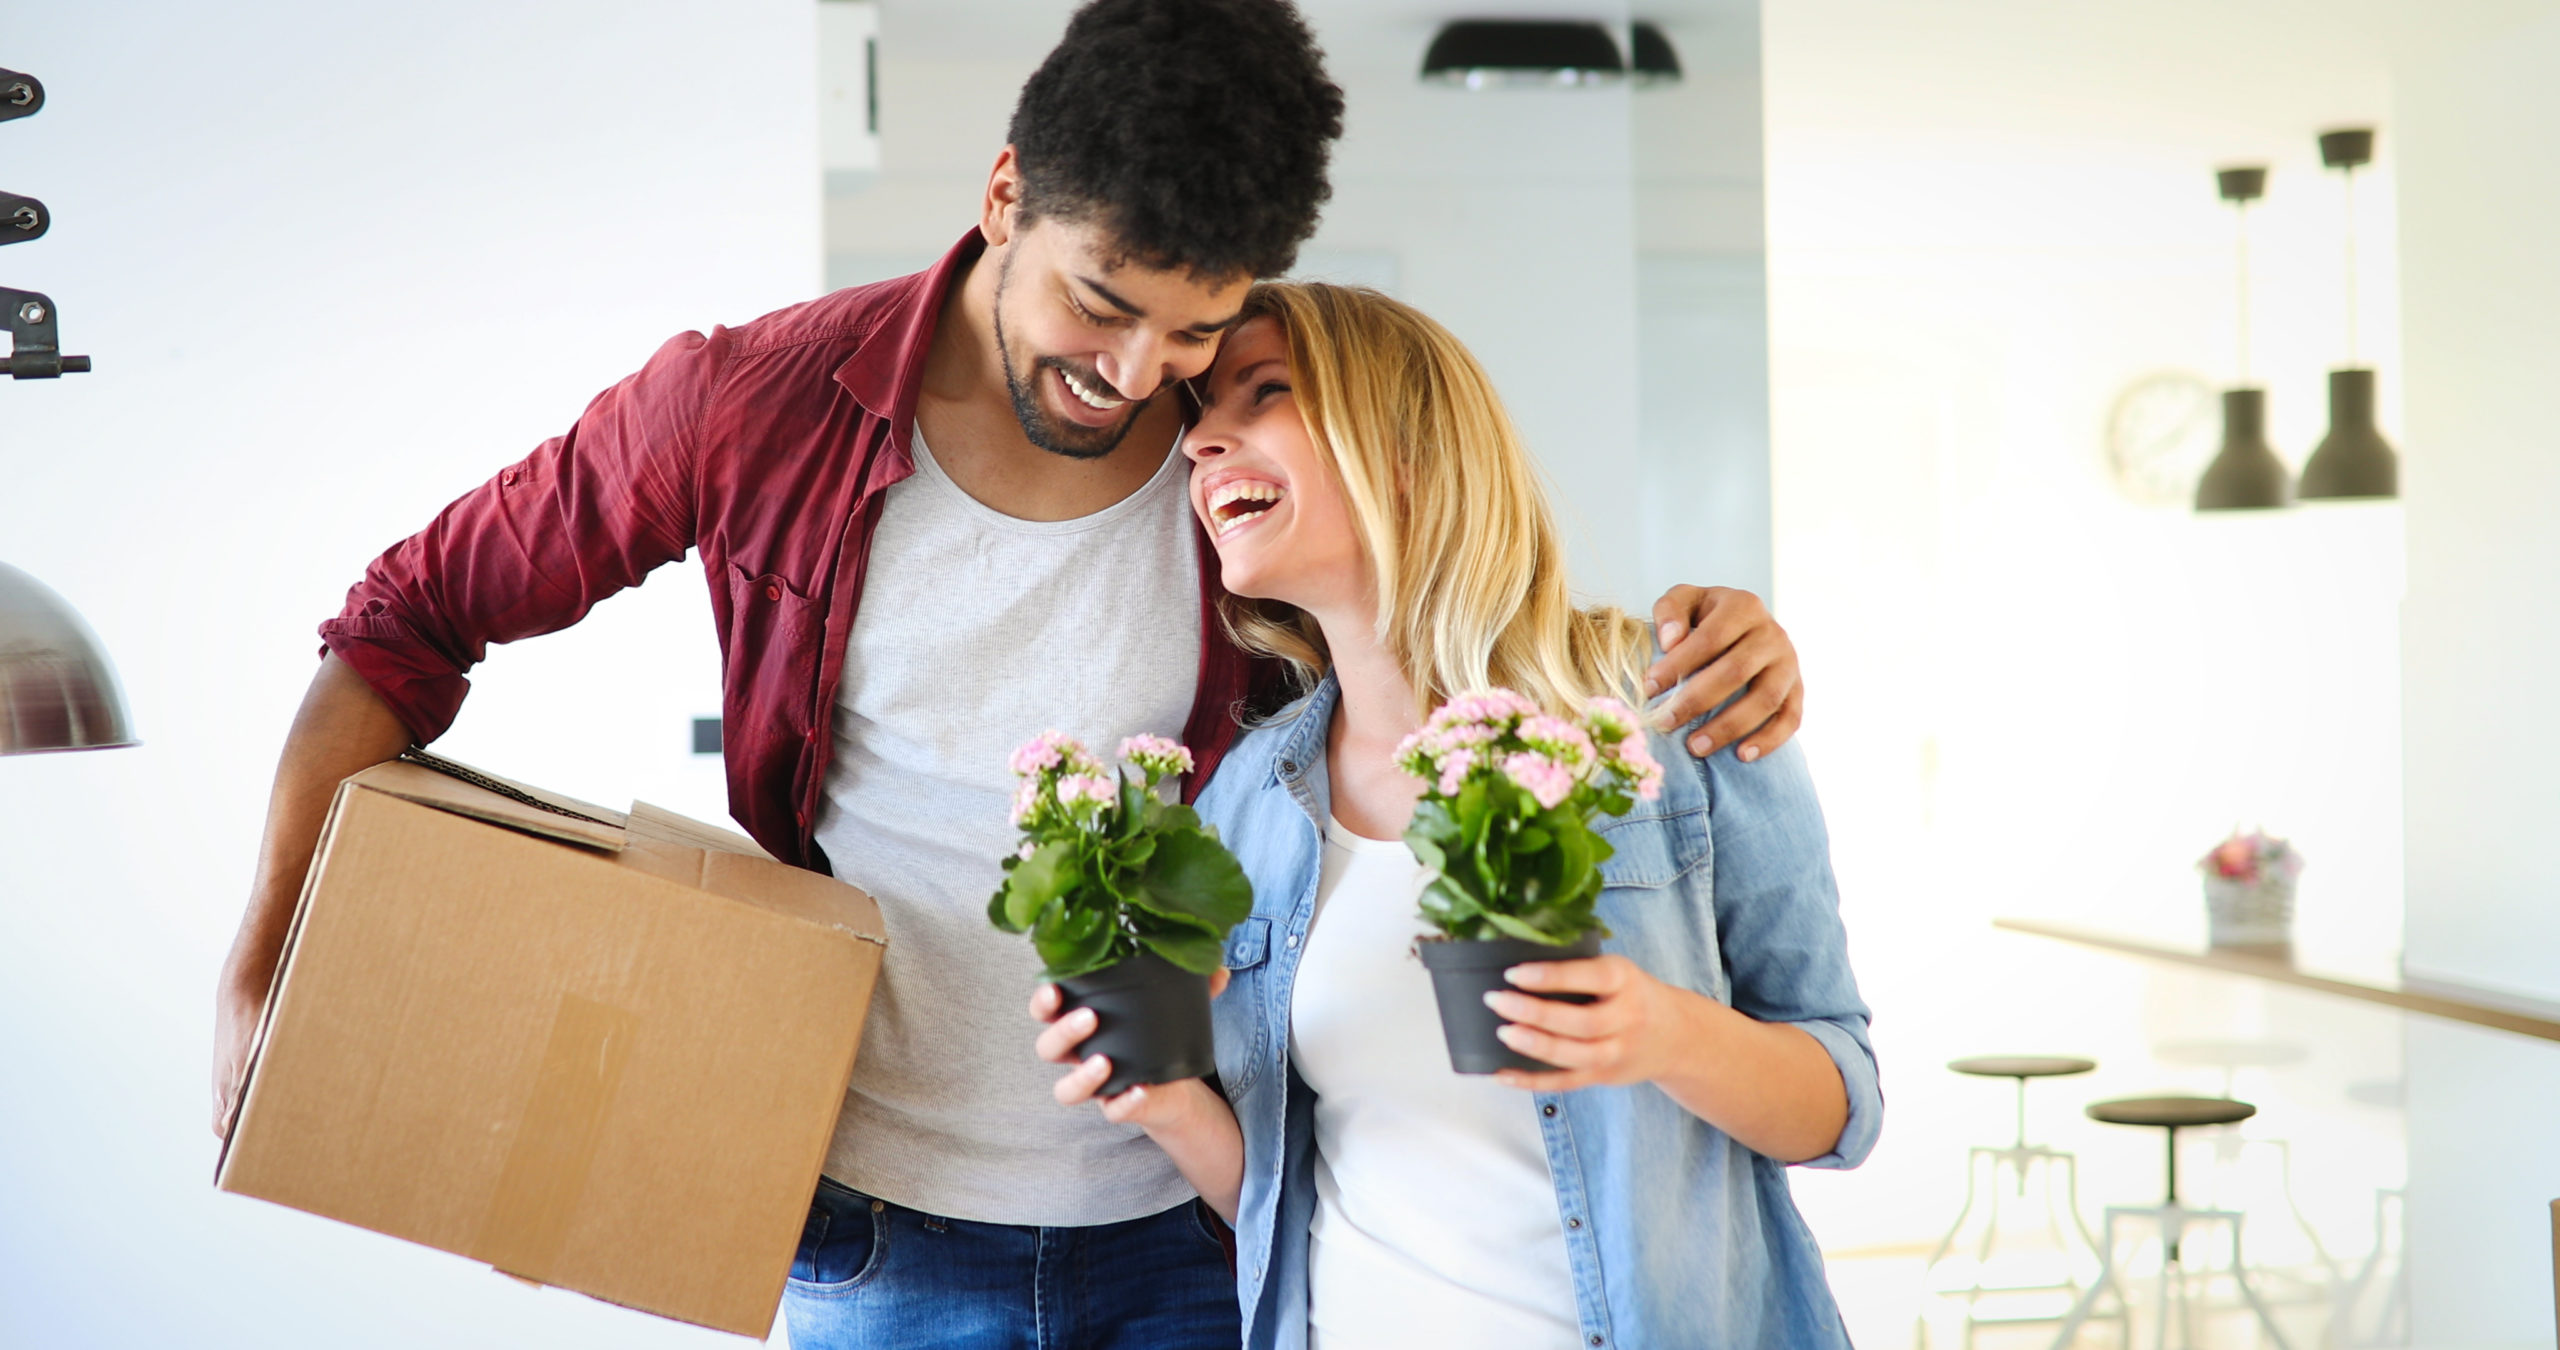 girlfriend and boyfriend moving into new apartment together